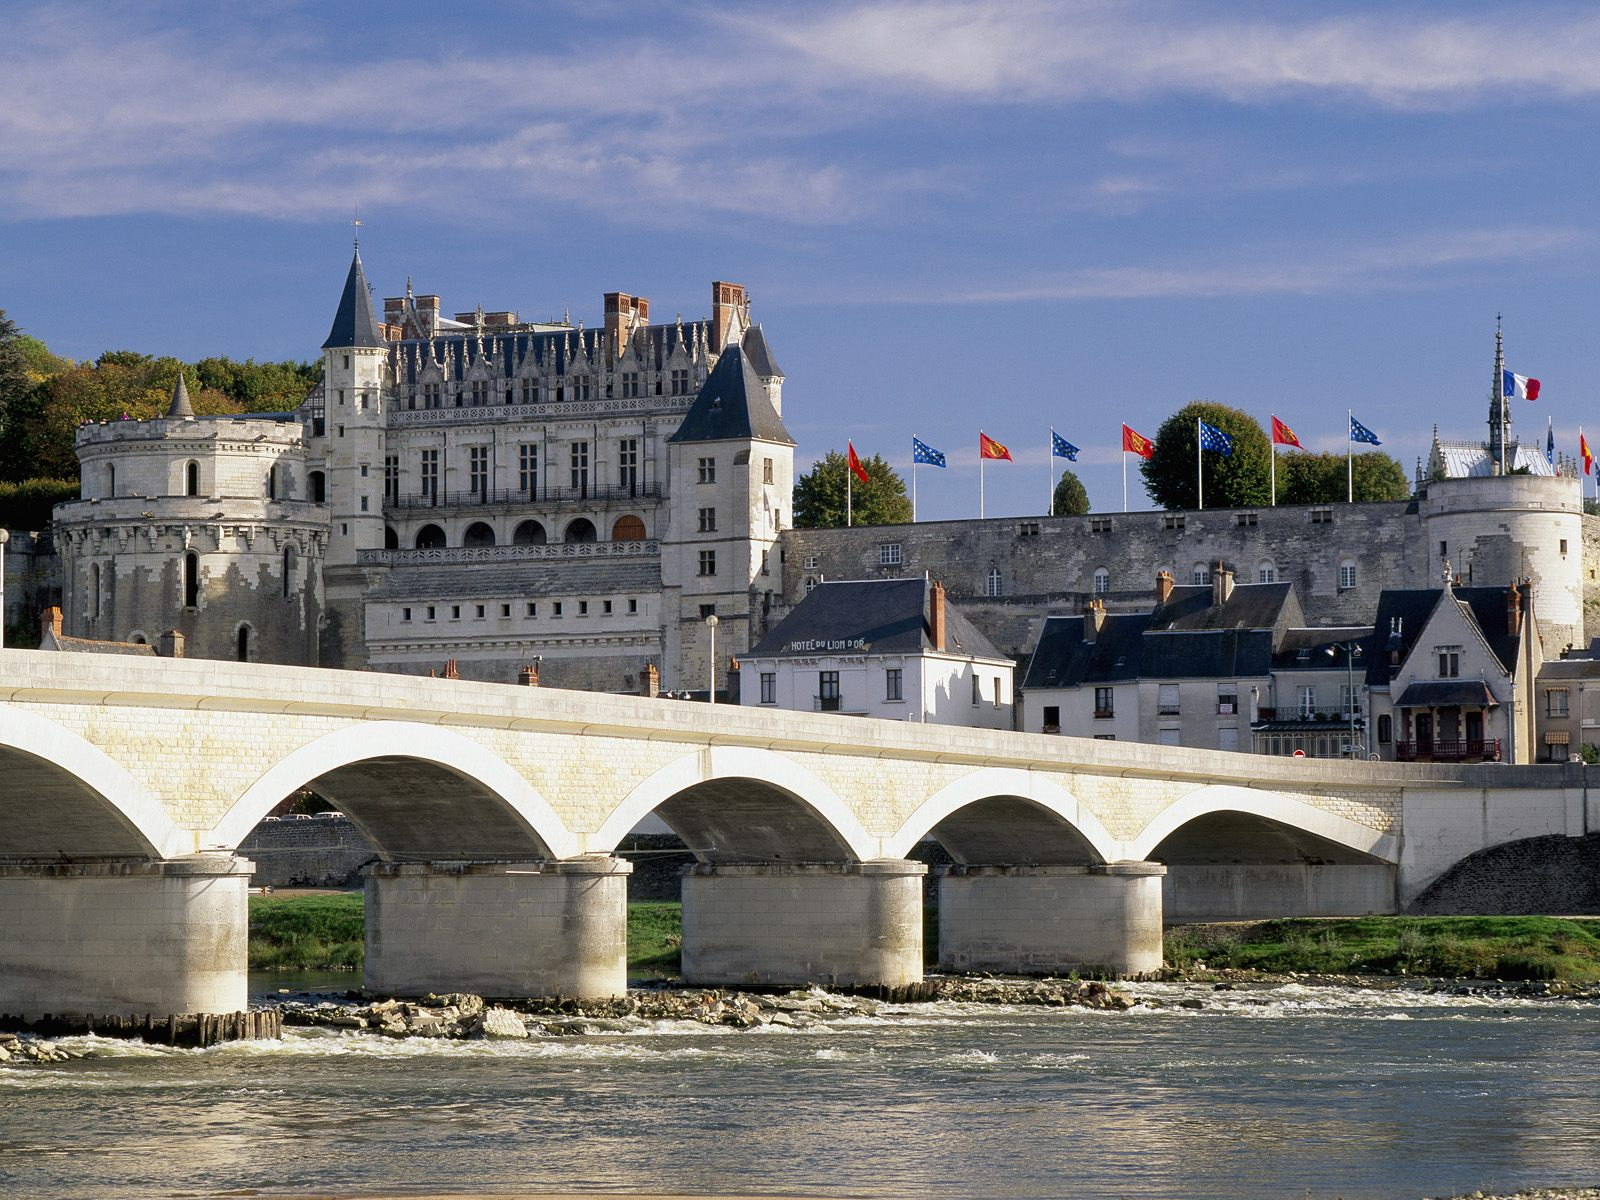 Chateau_d'Amboise_and_Bridge_Loire_Valley_France.jpg